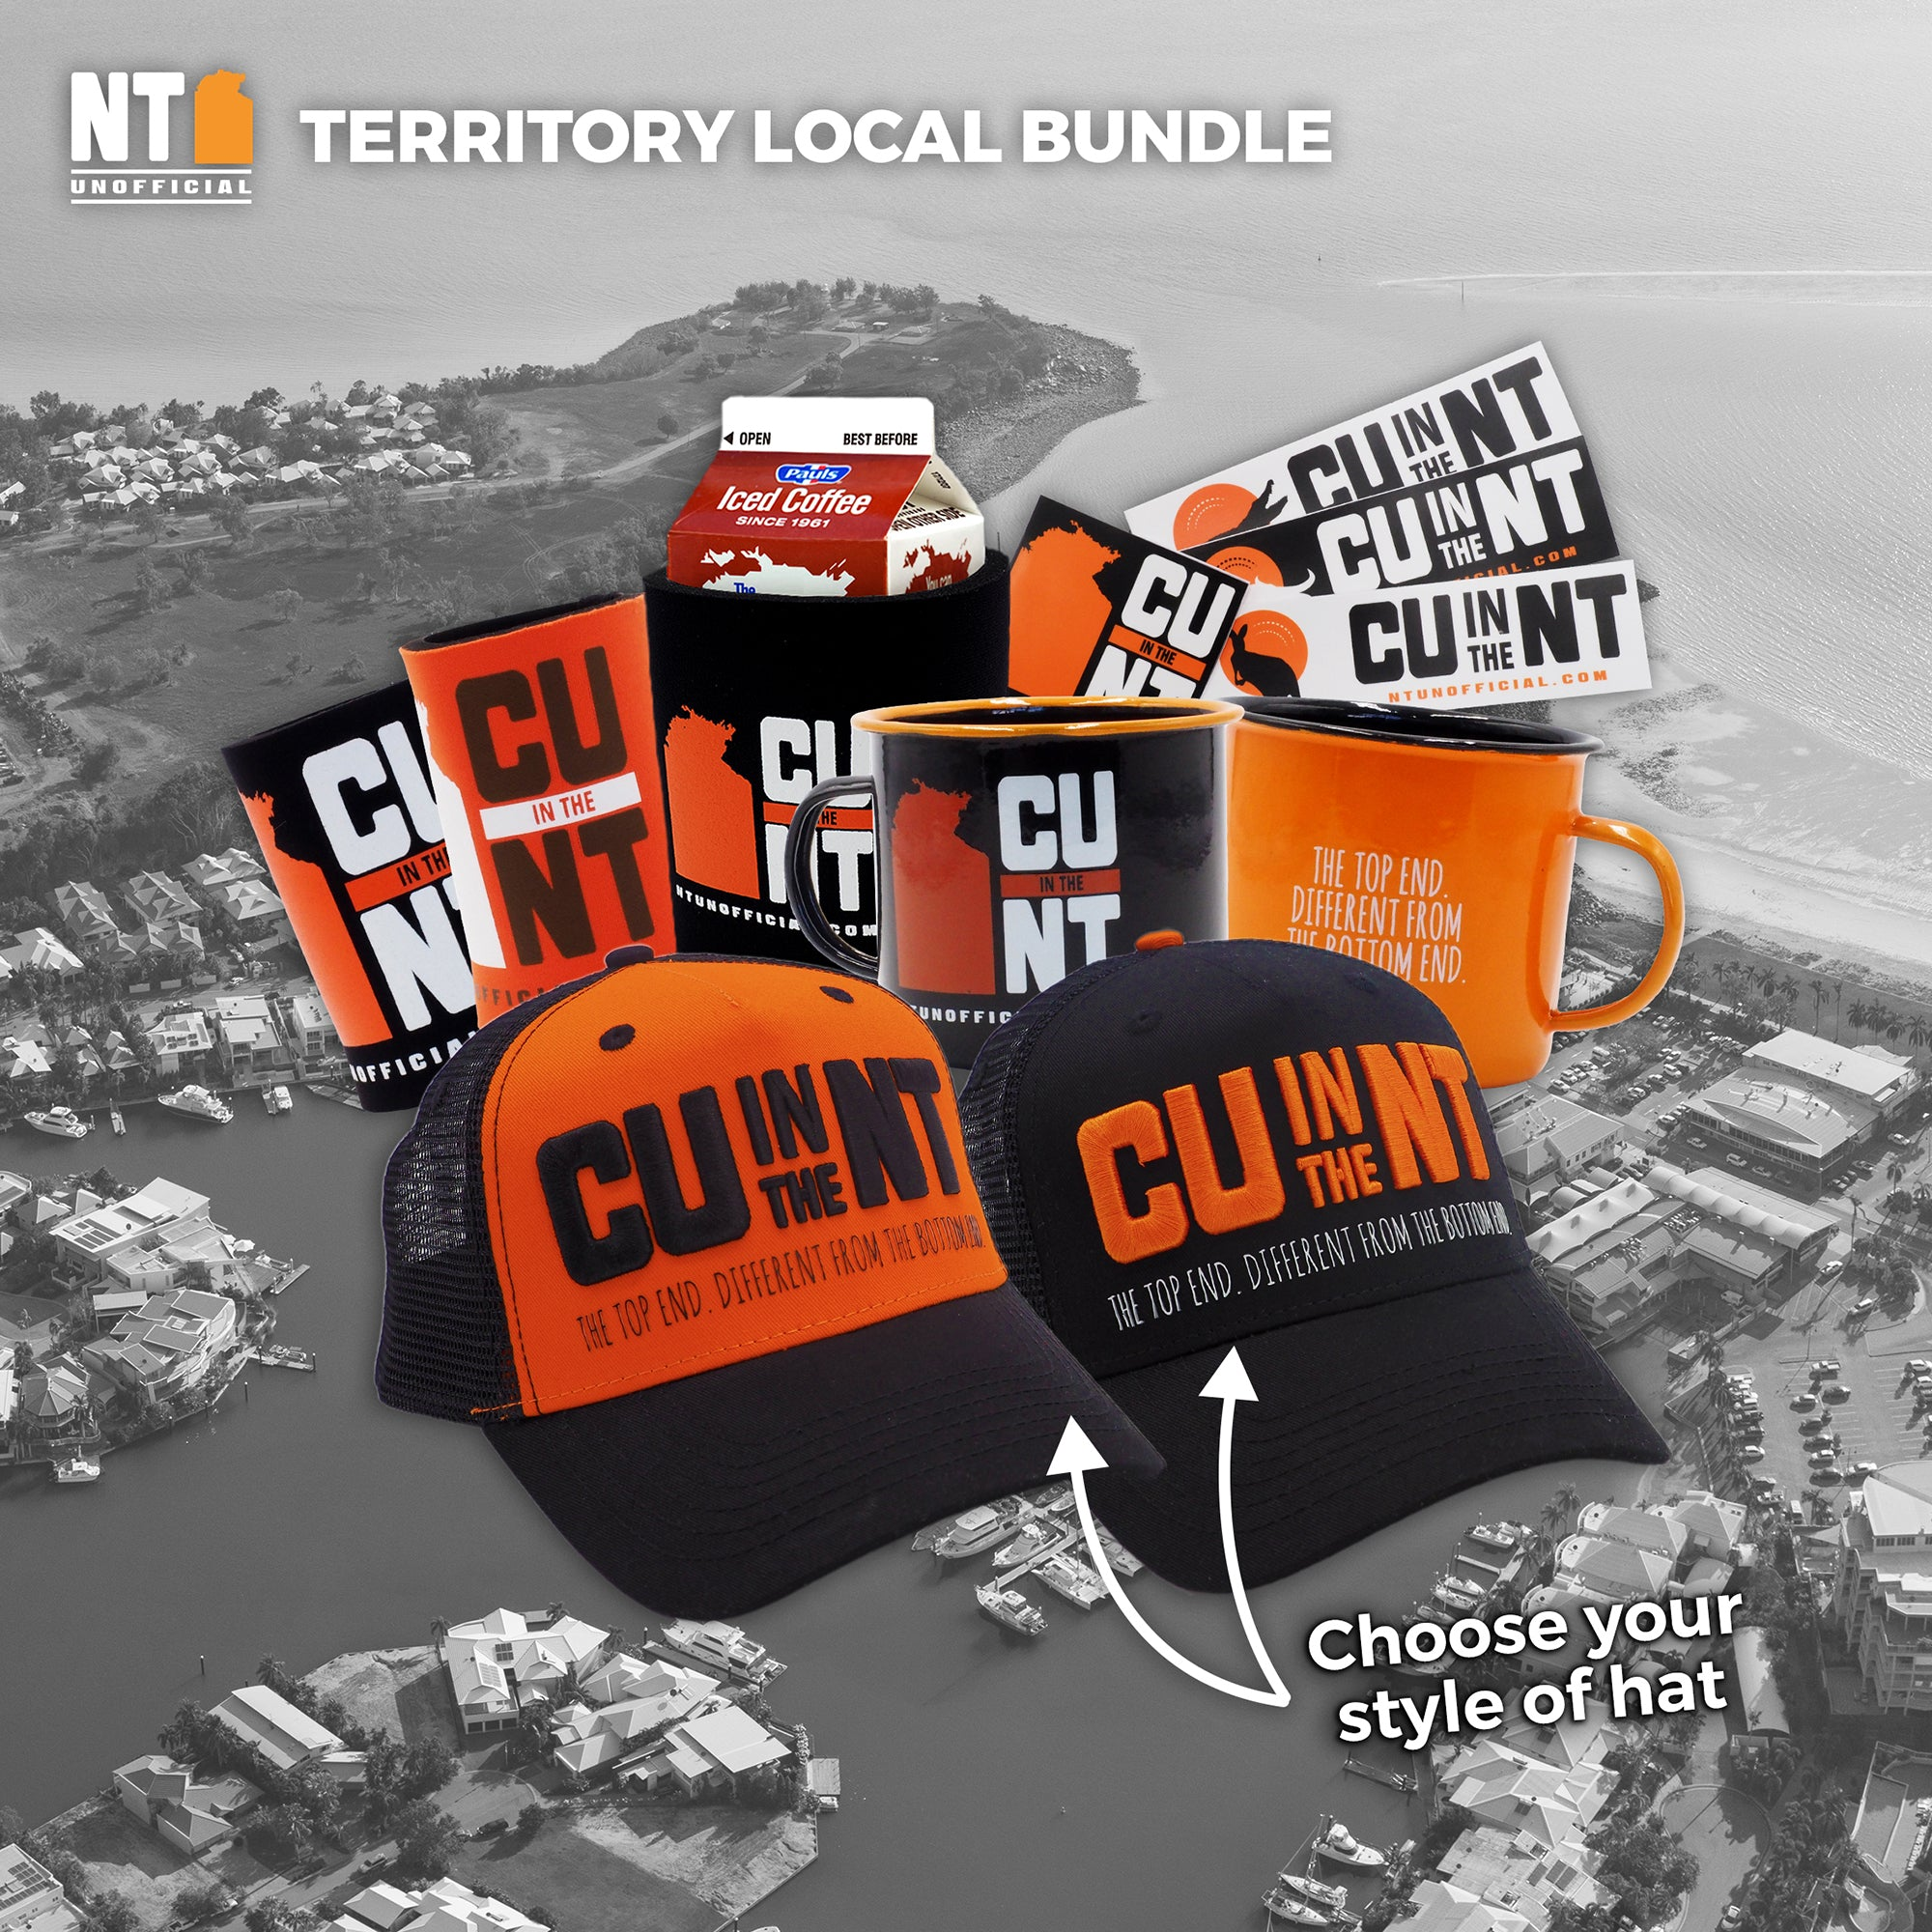 Territory Local Bundle